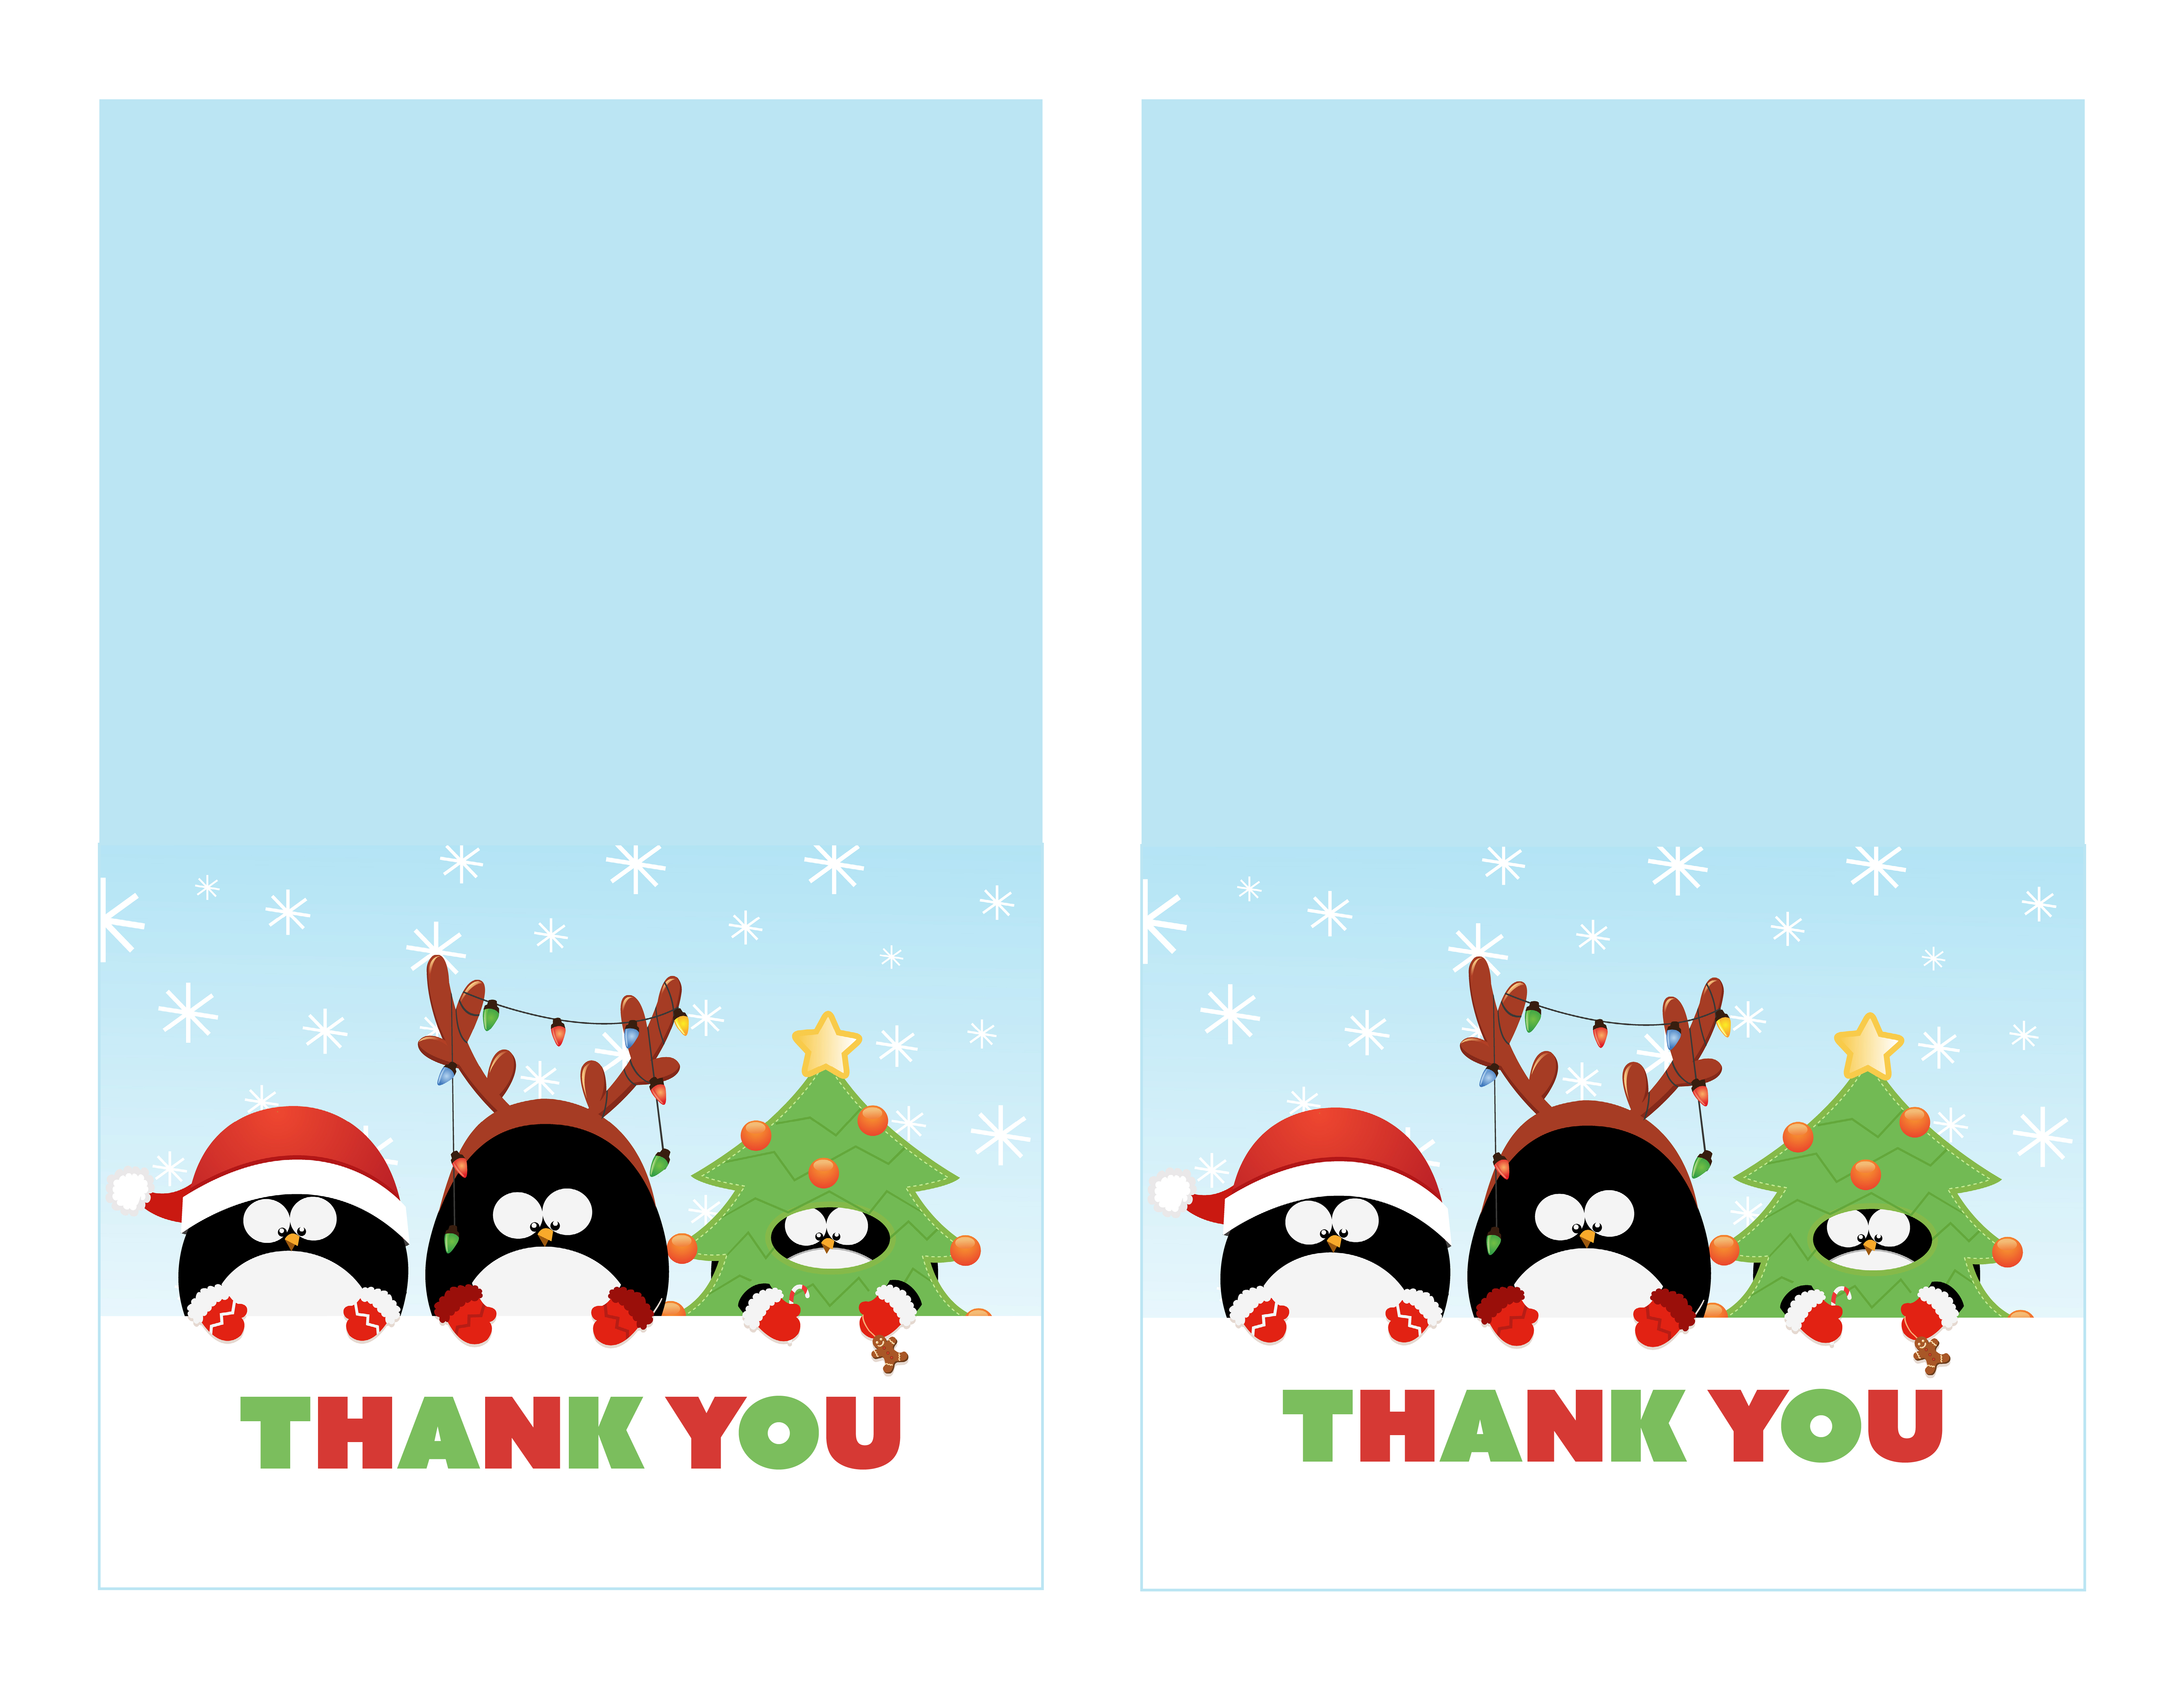 Free Printable Christmas Thank You Cards - Printable Cards - Christmas Thank You Cards Printable Free